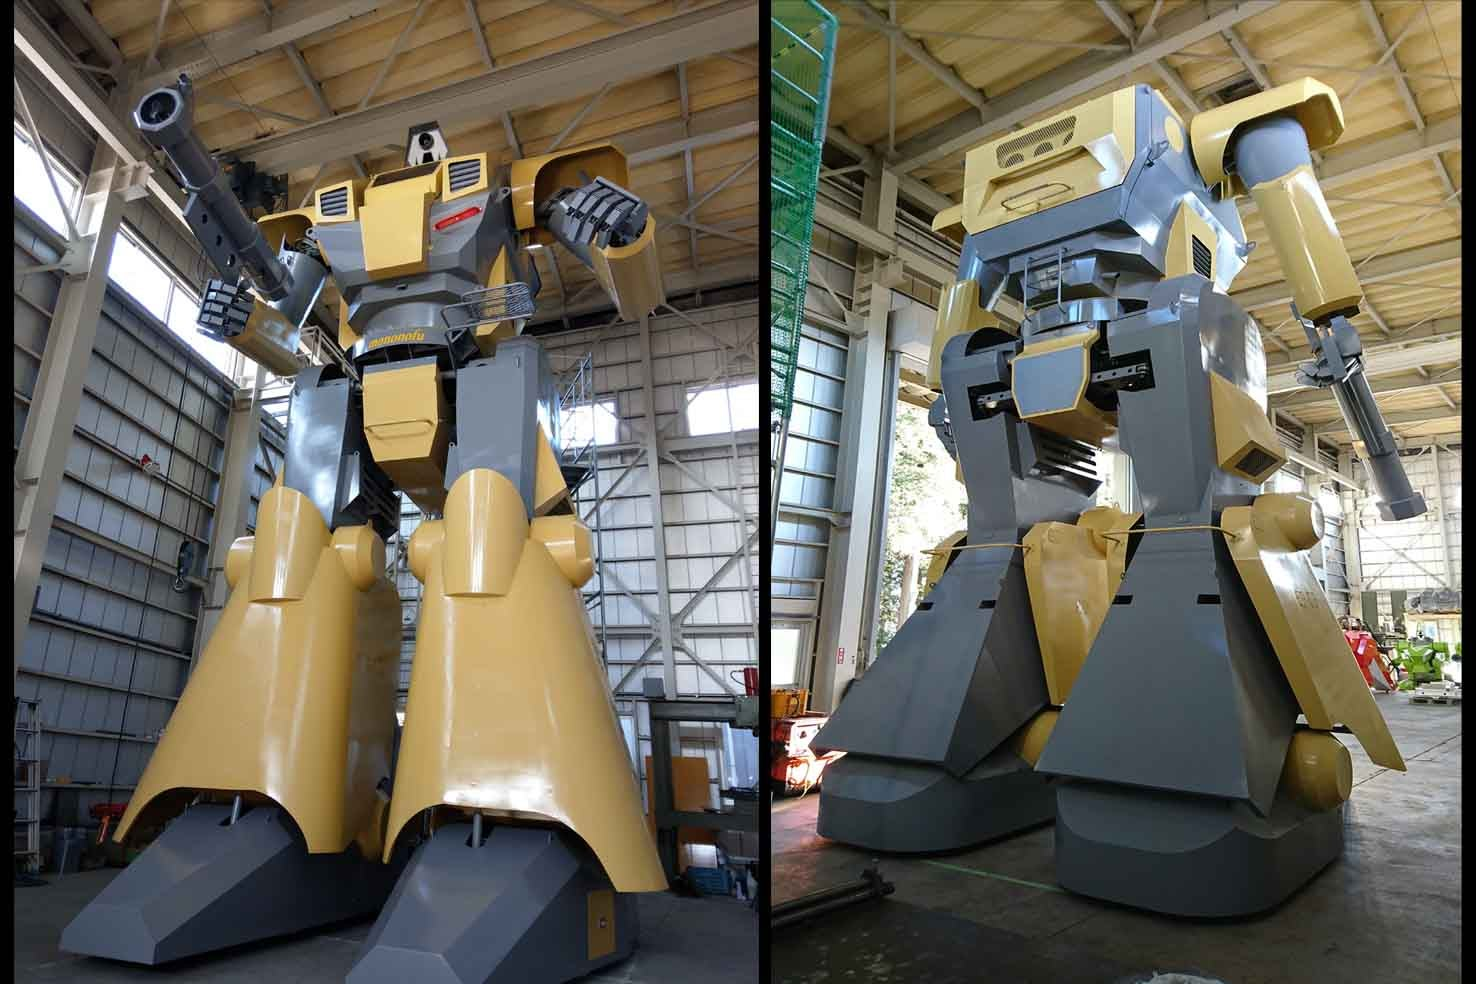 Behold, Japan's Newest Giant Mecha